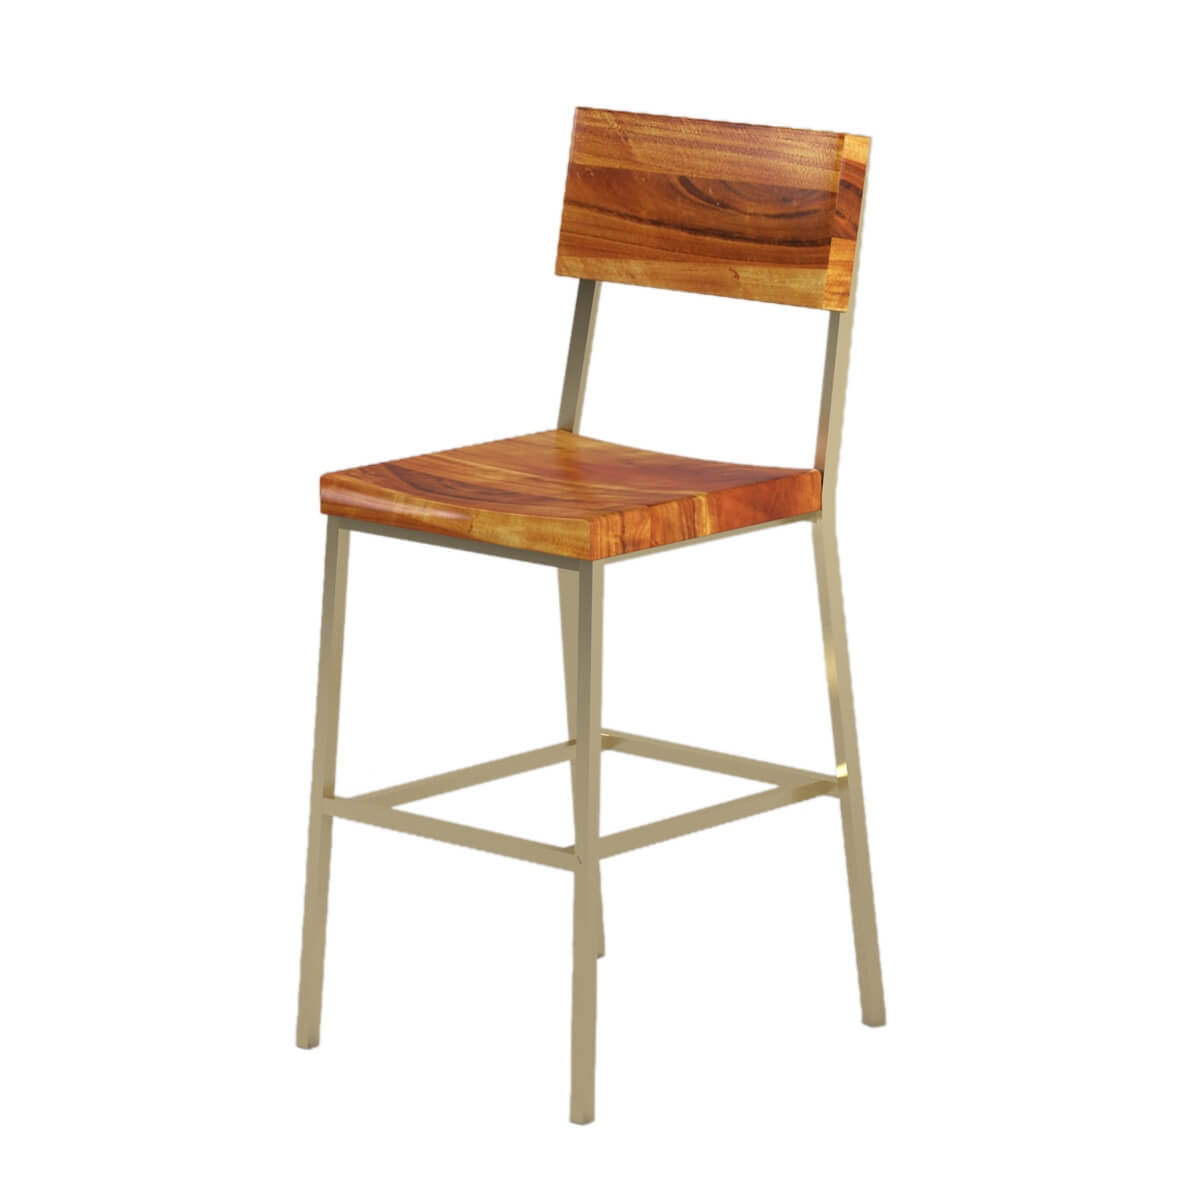 Modern Industrial Chair Modern Industrial Solid Wood Tall Bar Chair Set Of 2